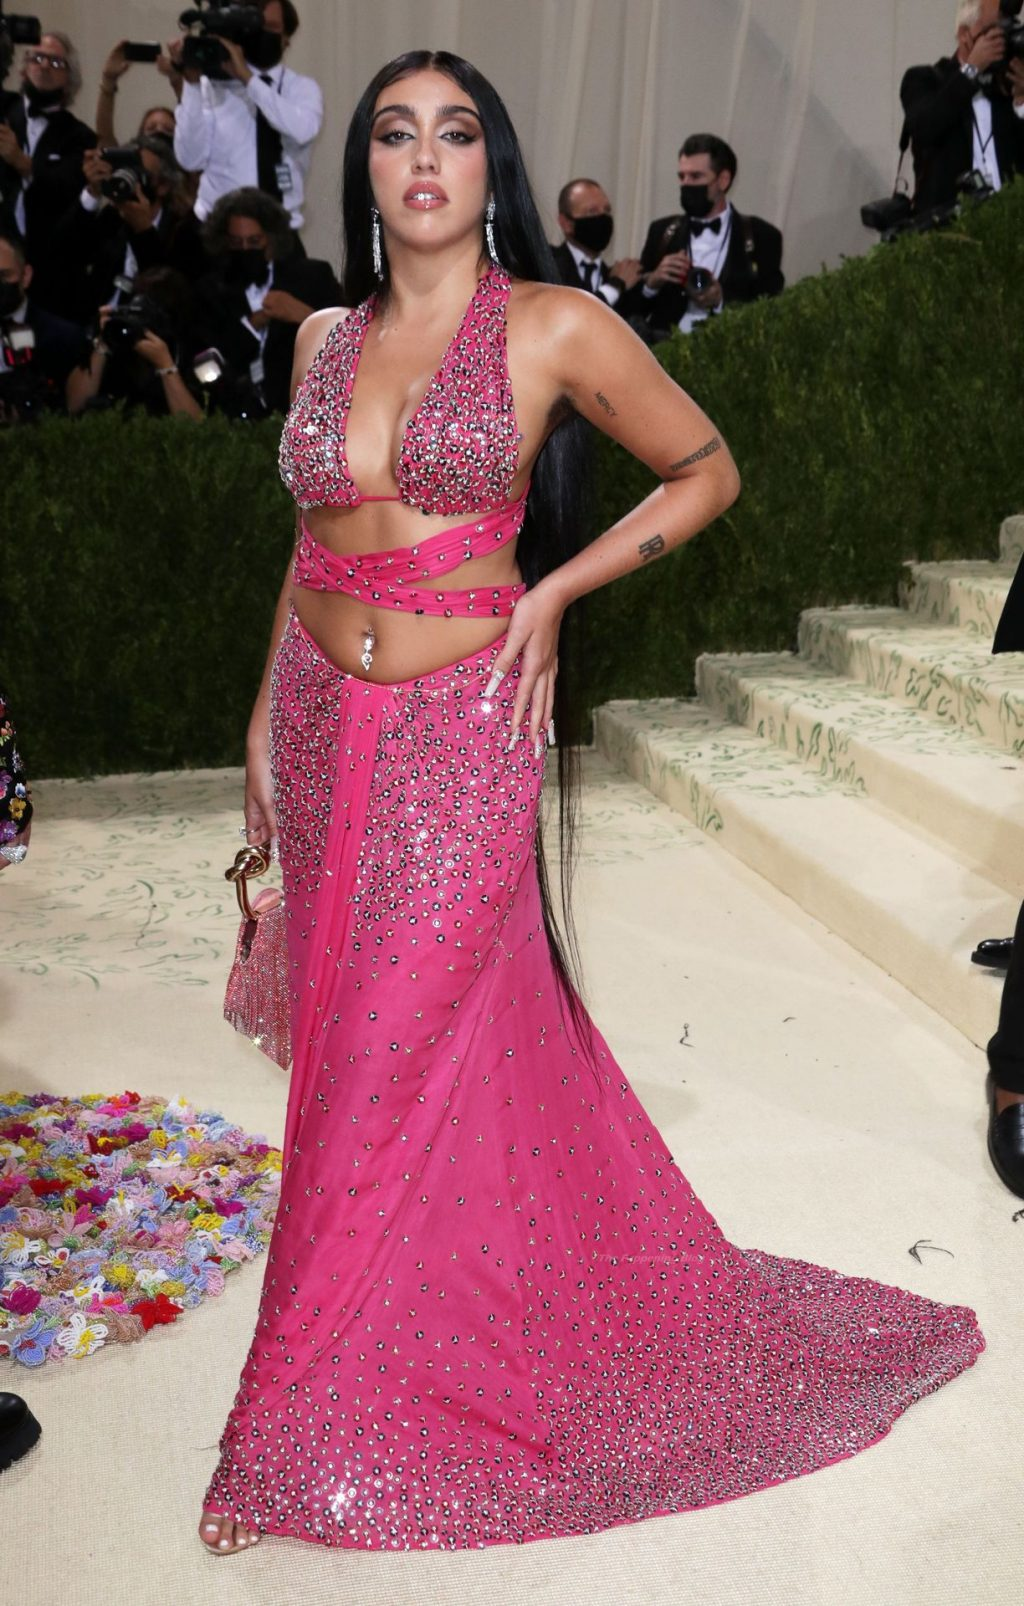 Lourdes Leon Proudly Shows Off Her Armpit Hair and Abs in a Pink Studded Dress at the 2021 Met Gala (70 Photos)